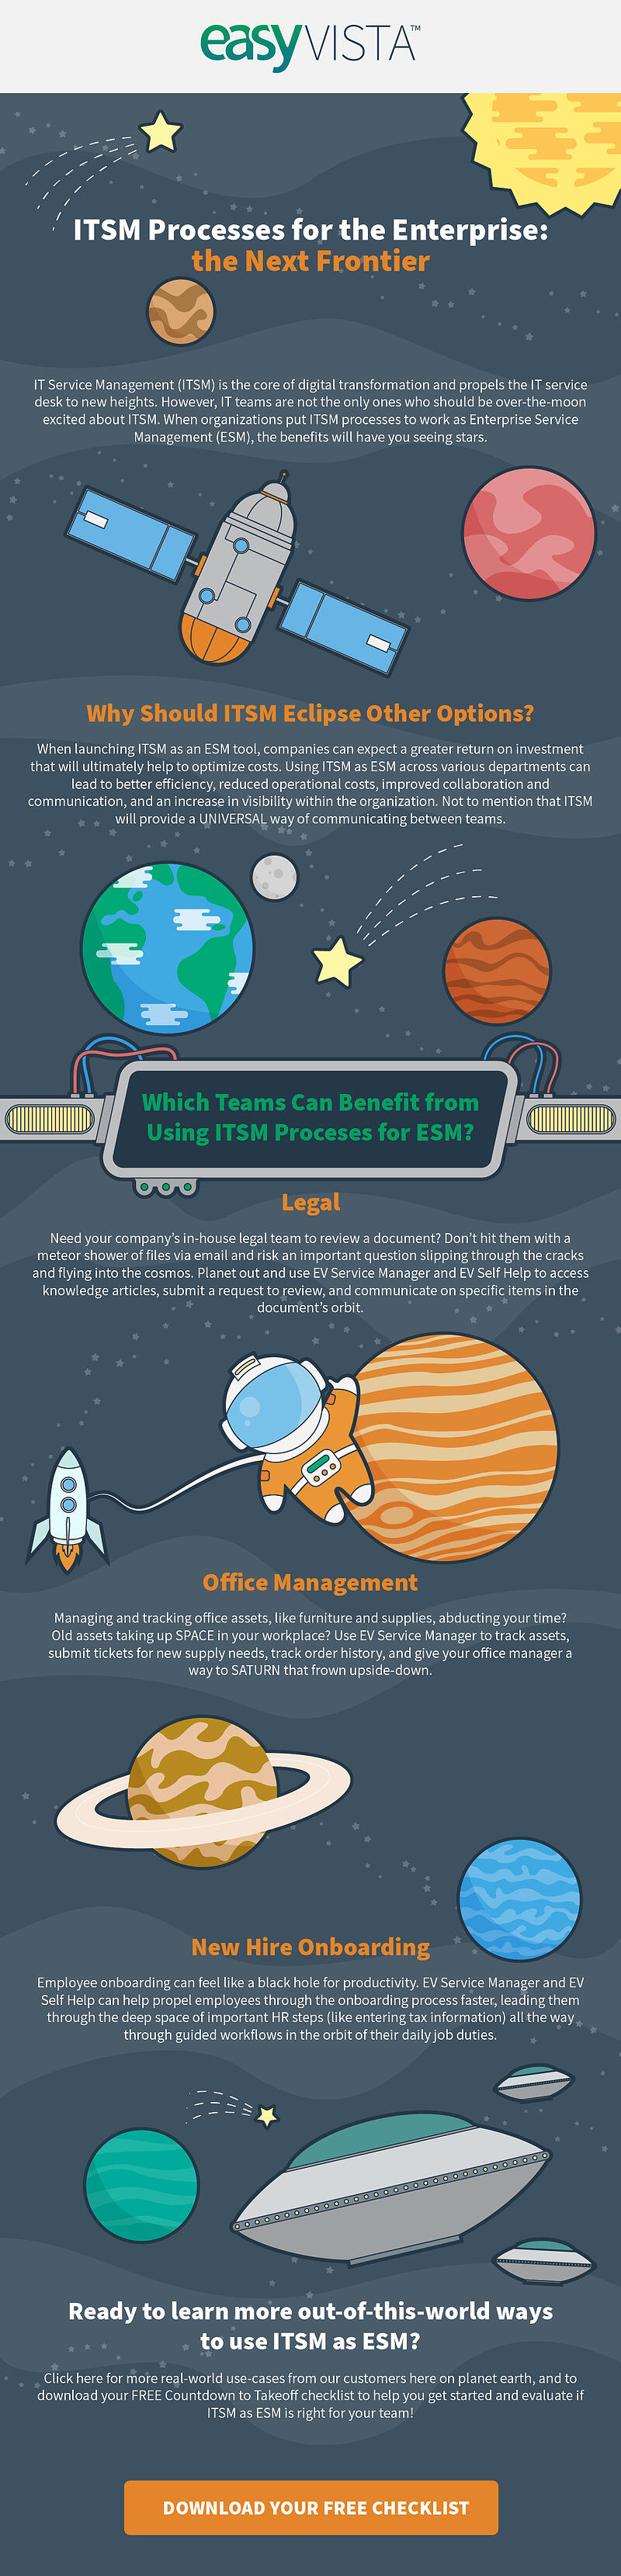 Infographic-3-ways-to-take-service-management-beond-IT-EN